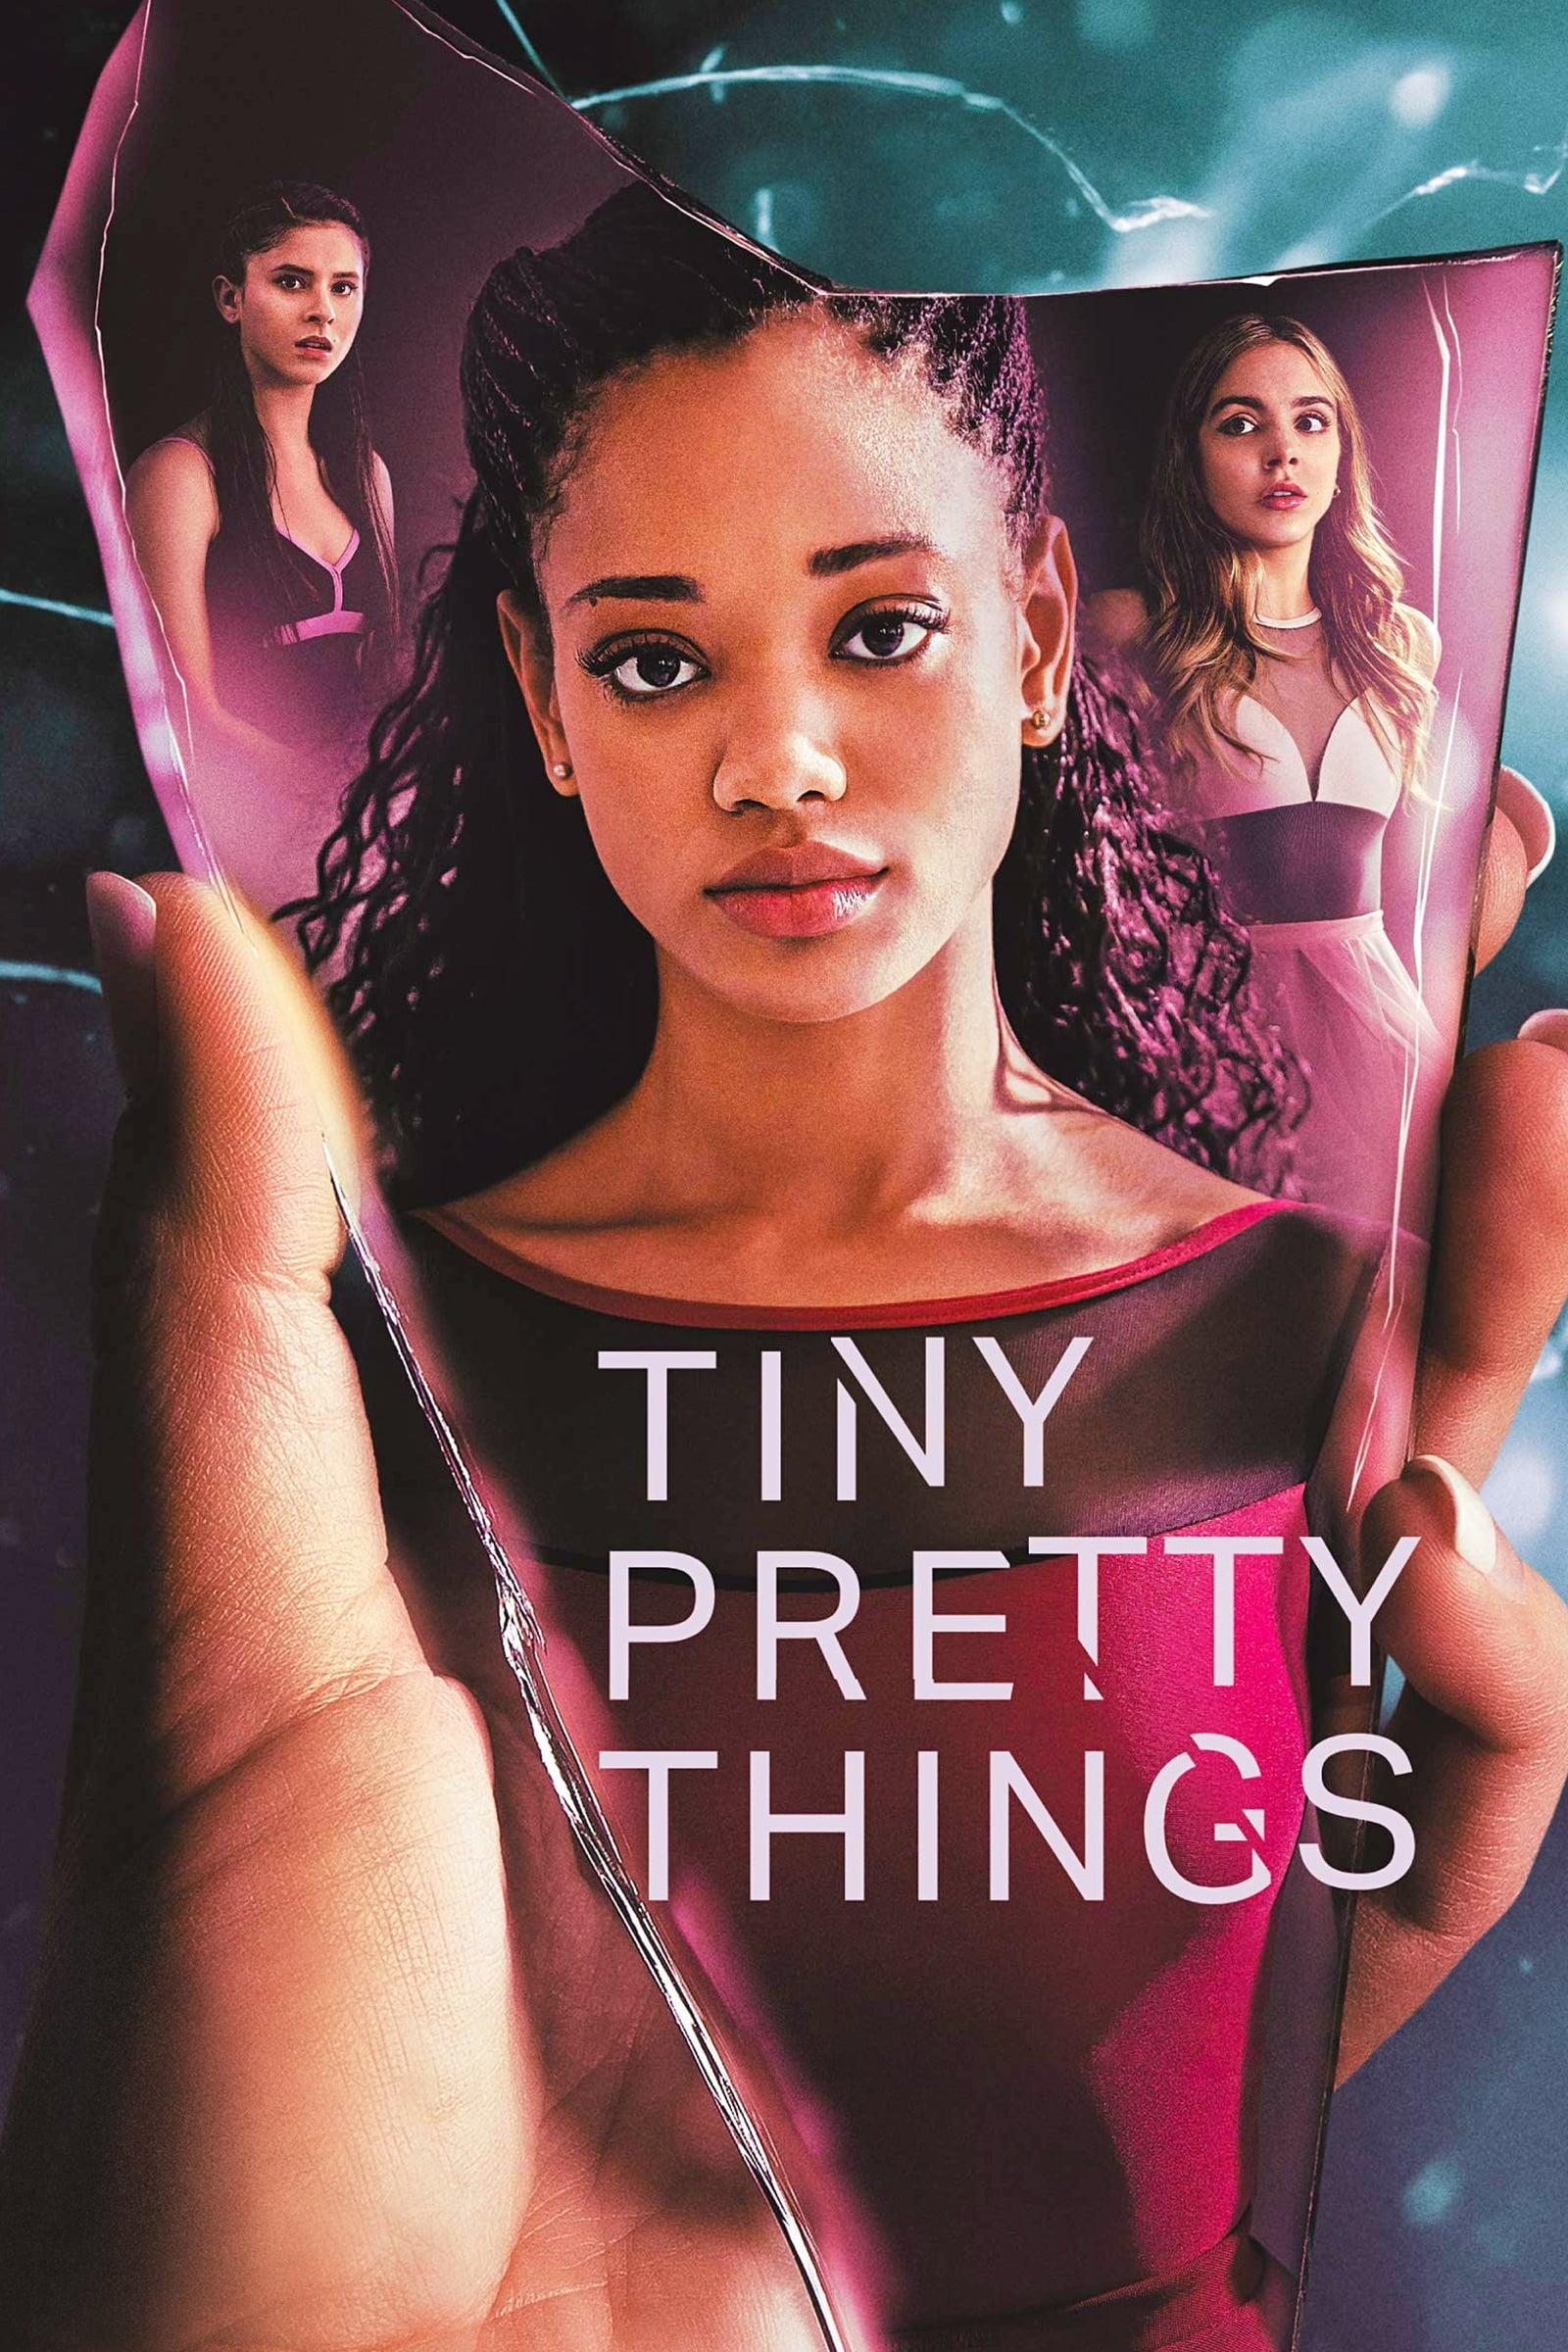 Tiny Pretty Things TV Shows About Based On Novel Or Book